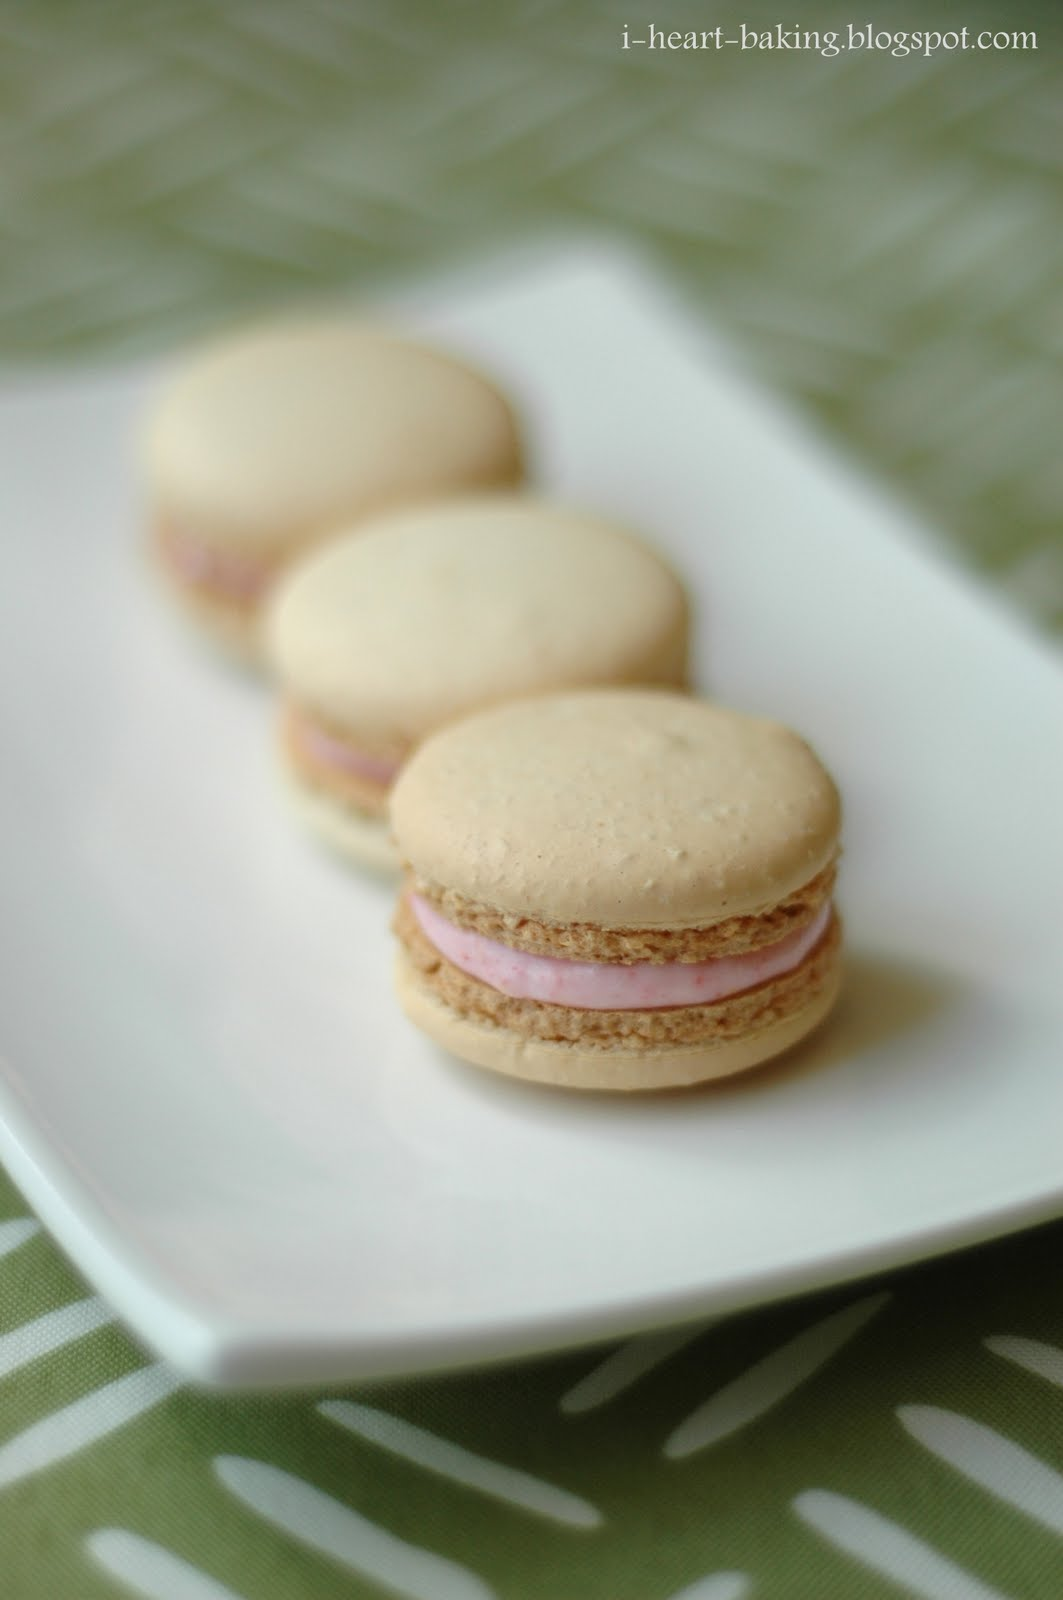 ... to make a combination of my lemon macarons and my strawberry macarons